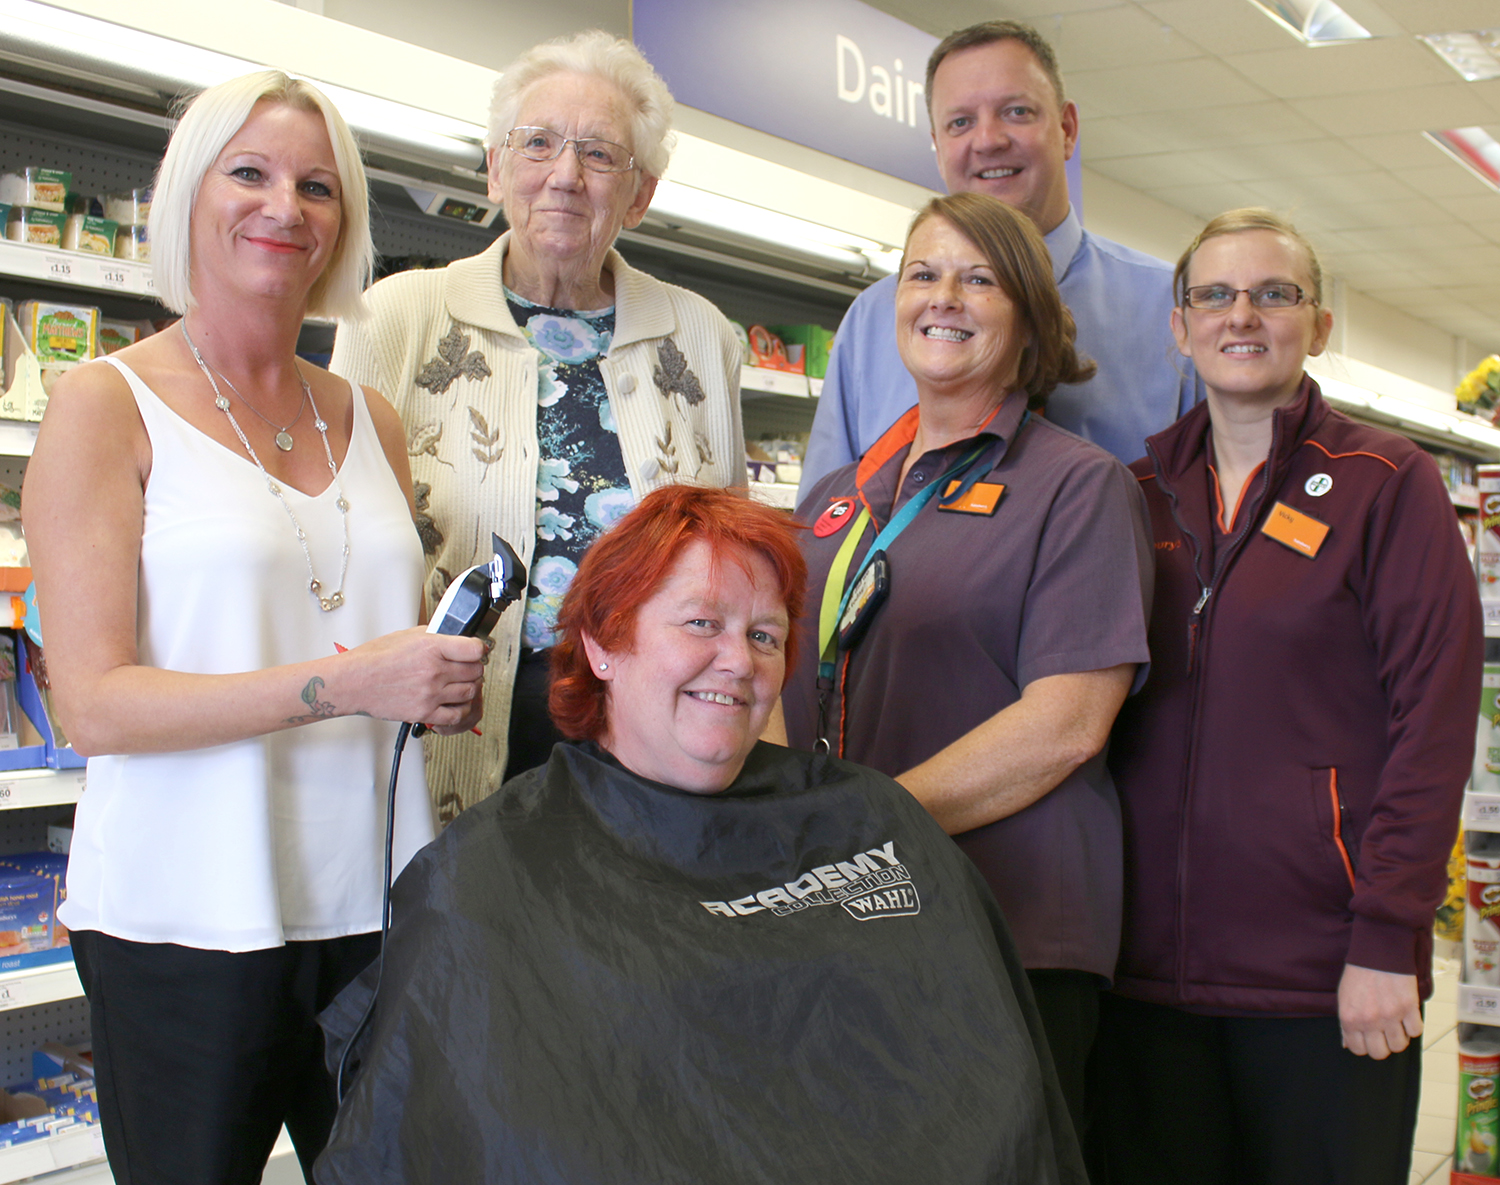 Head Shave to Help Town Youth Group